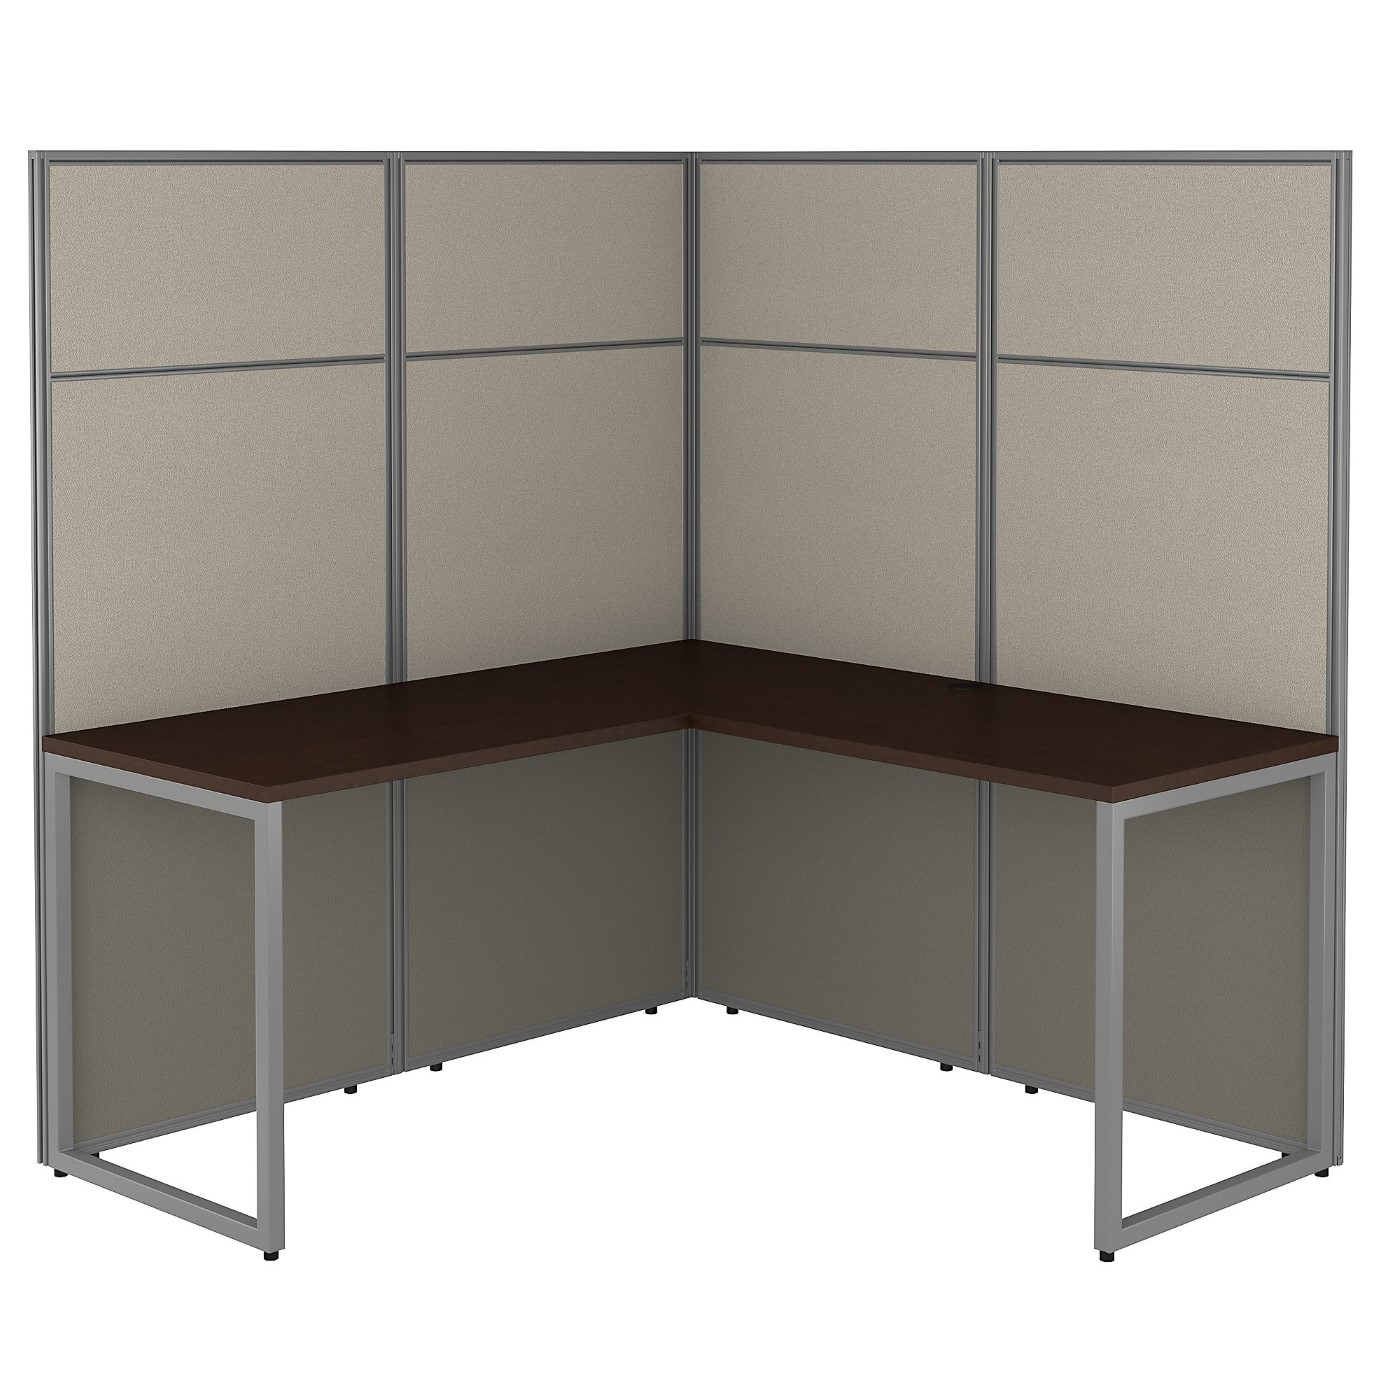 <font color=#c60><b>BUSH BUSINESS FURNITURE EASY OFFICE 60W L SHAPED CUBICLE DESK WORKSTATION WITH 66H PANELS. FREE SHIPPING 30H x 72L x 72W</font></b>